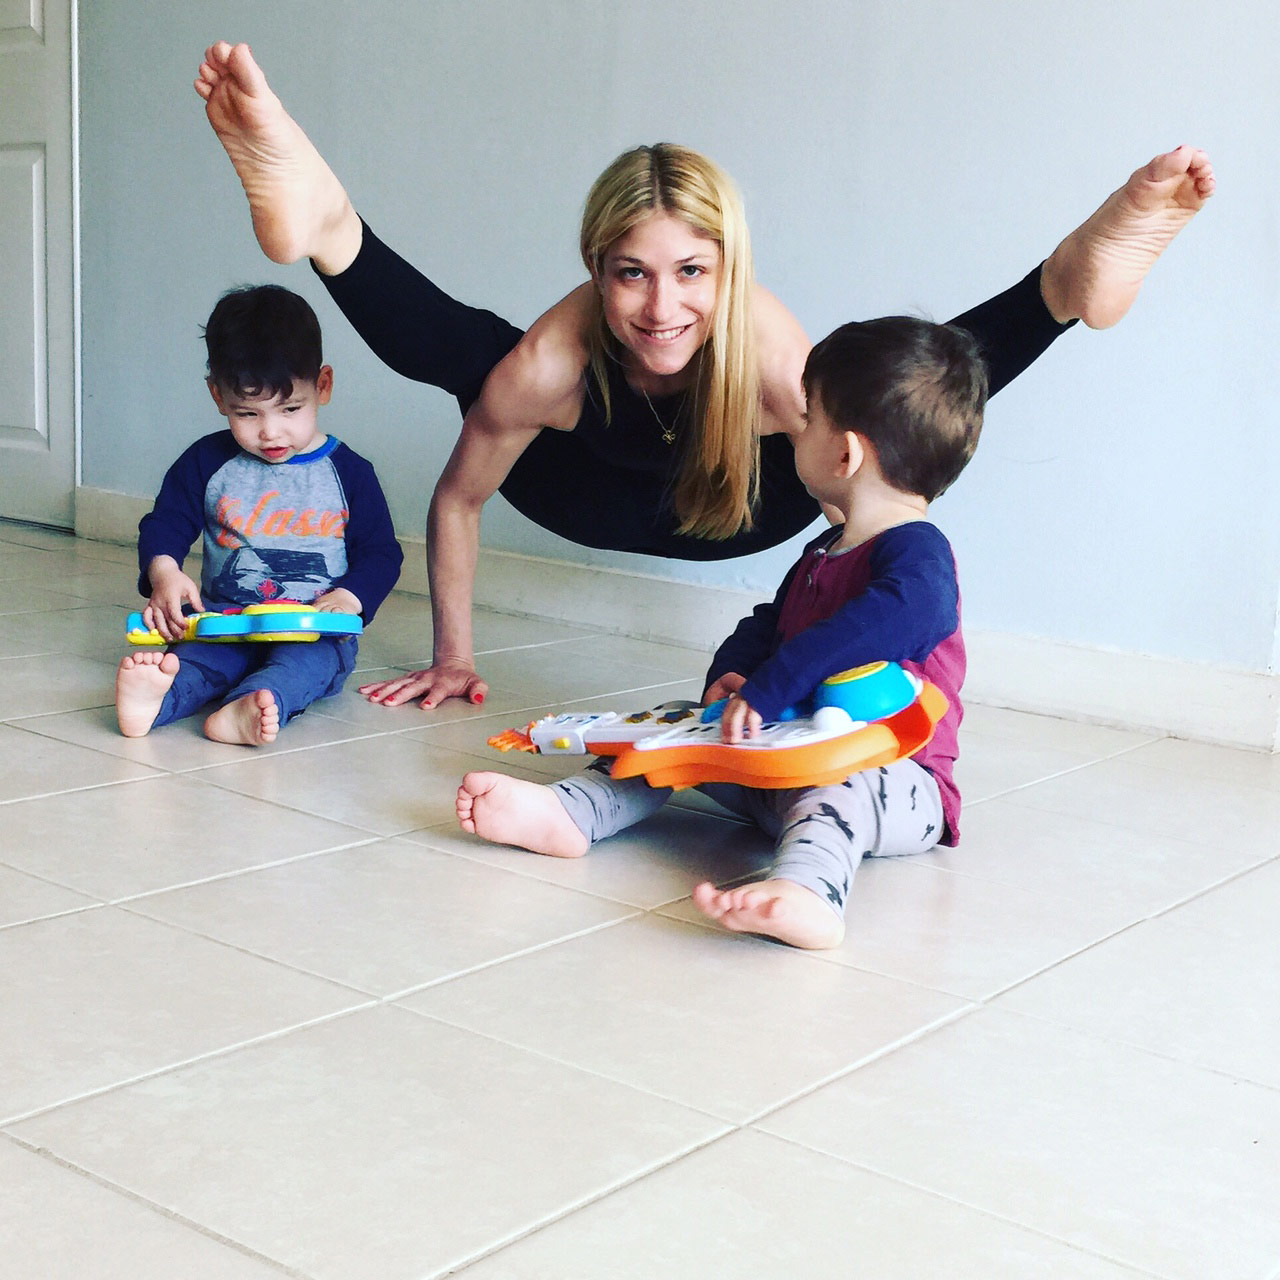 View larger photo of yoga instructor doing yoga with toddlers